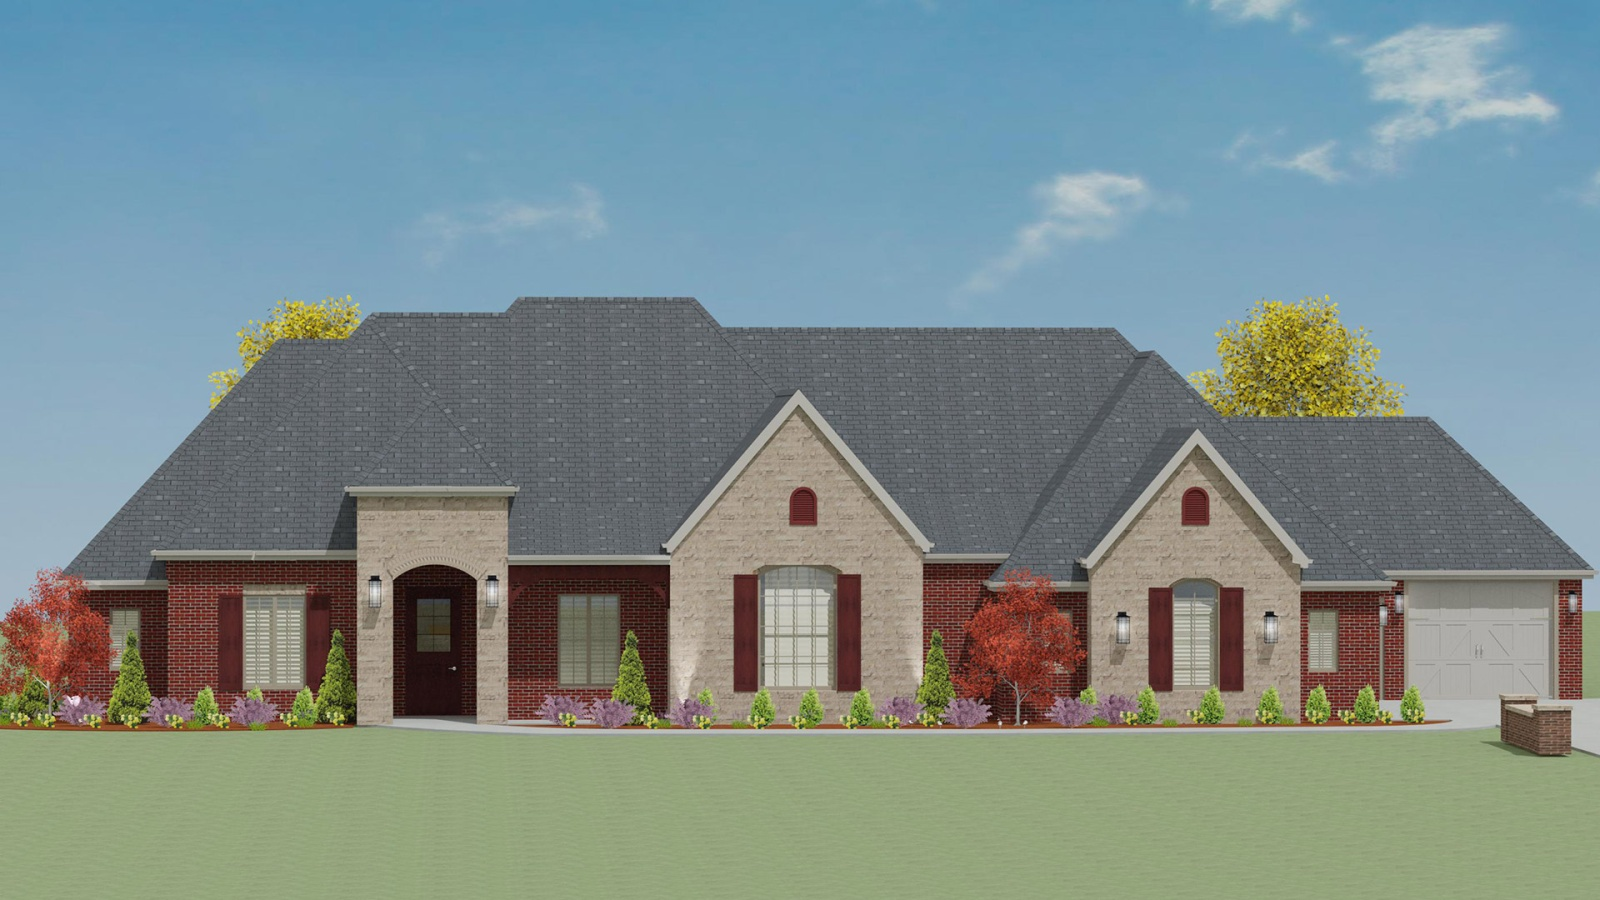 4 Bedrooms Bedrooms, ,3 BathroomsBathrooms,Custom Home,Home Plans,1085